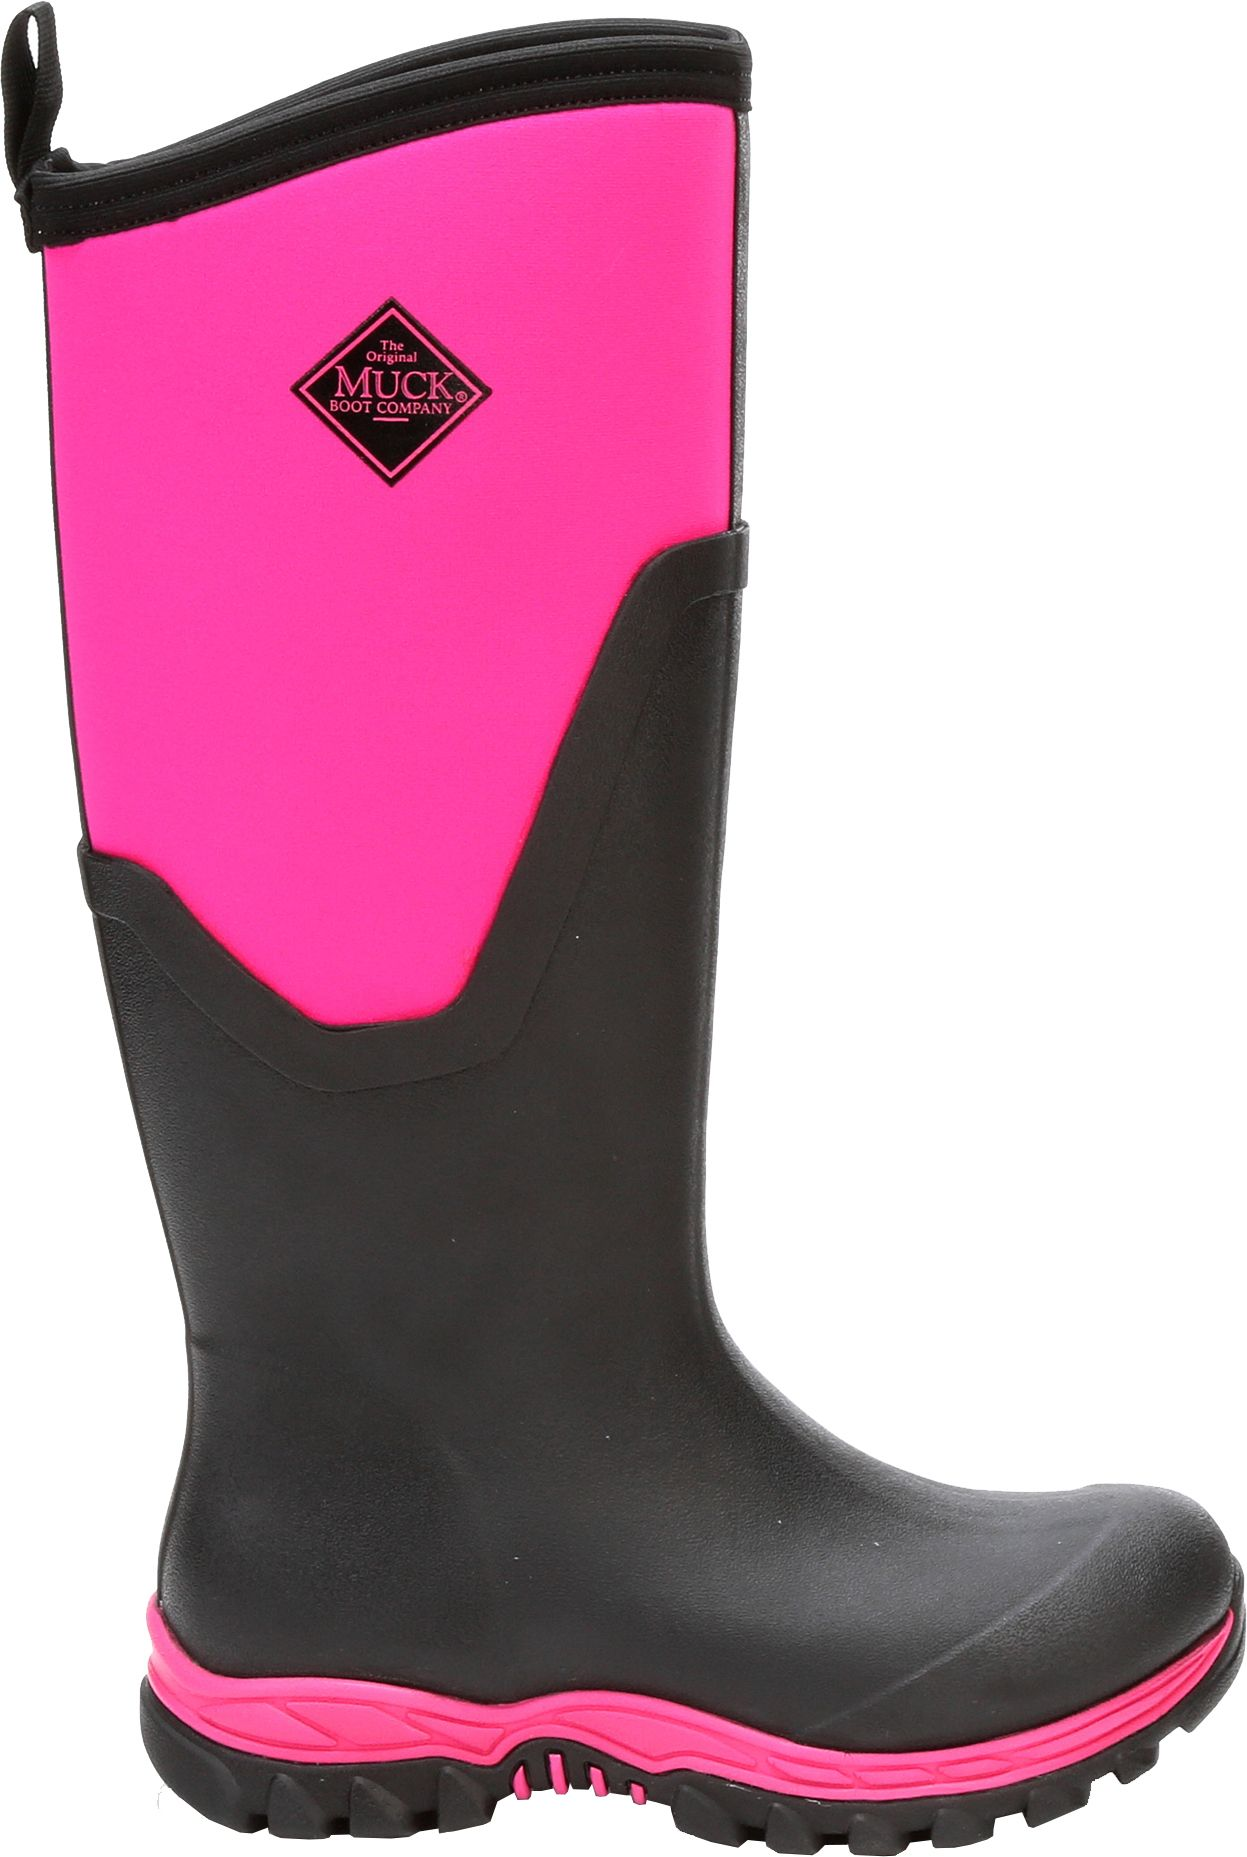 Muck Boot Women's Arctic Sport II Tall Winter Boots| DICK'S ...